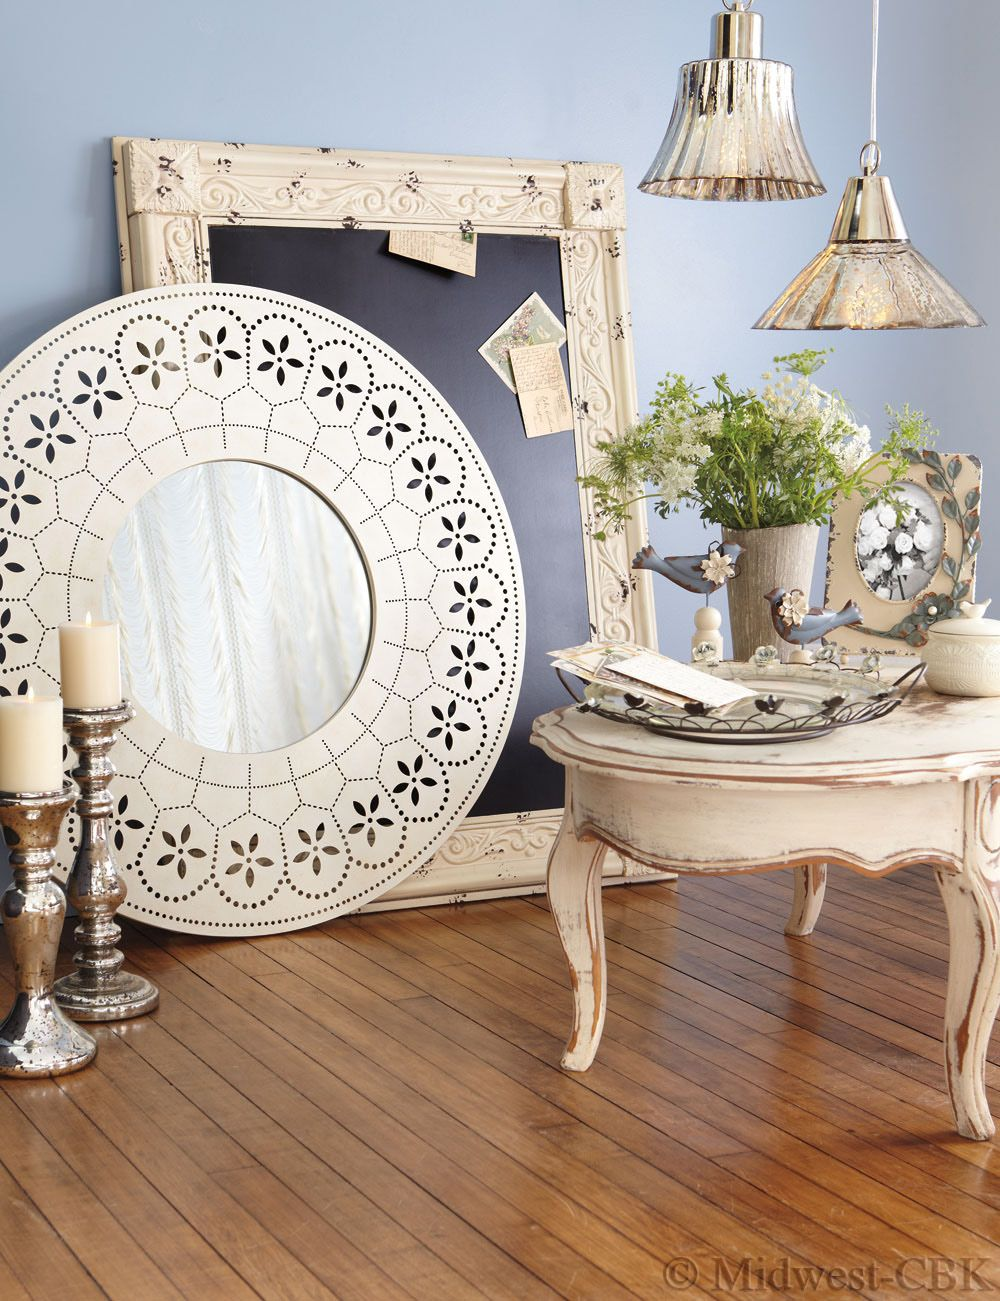 The Trend In Vintage Inspired Design Remains Strong In Home Decor